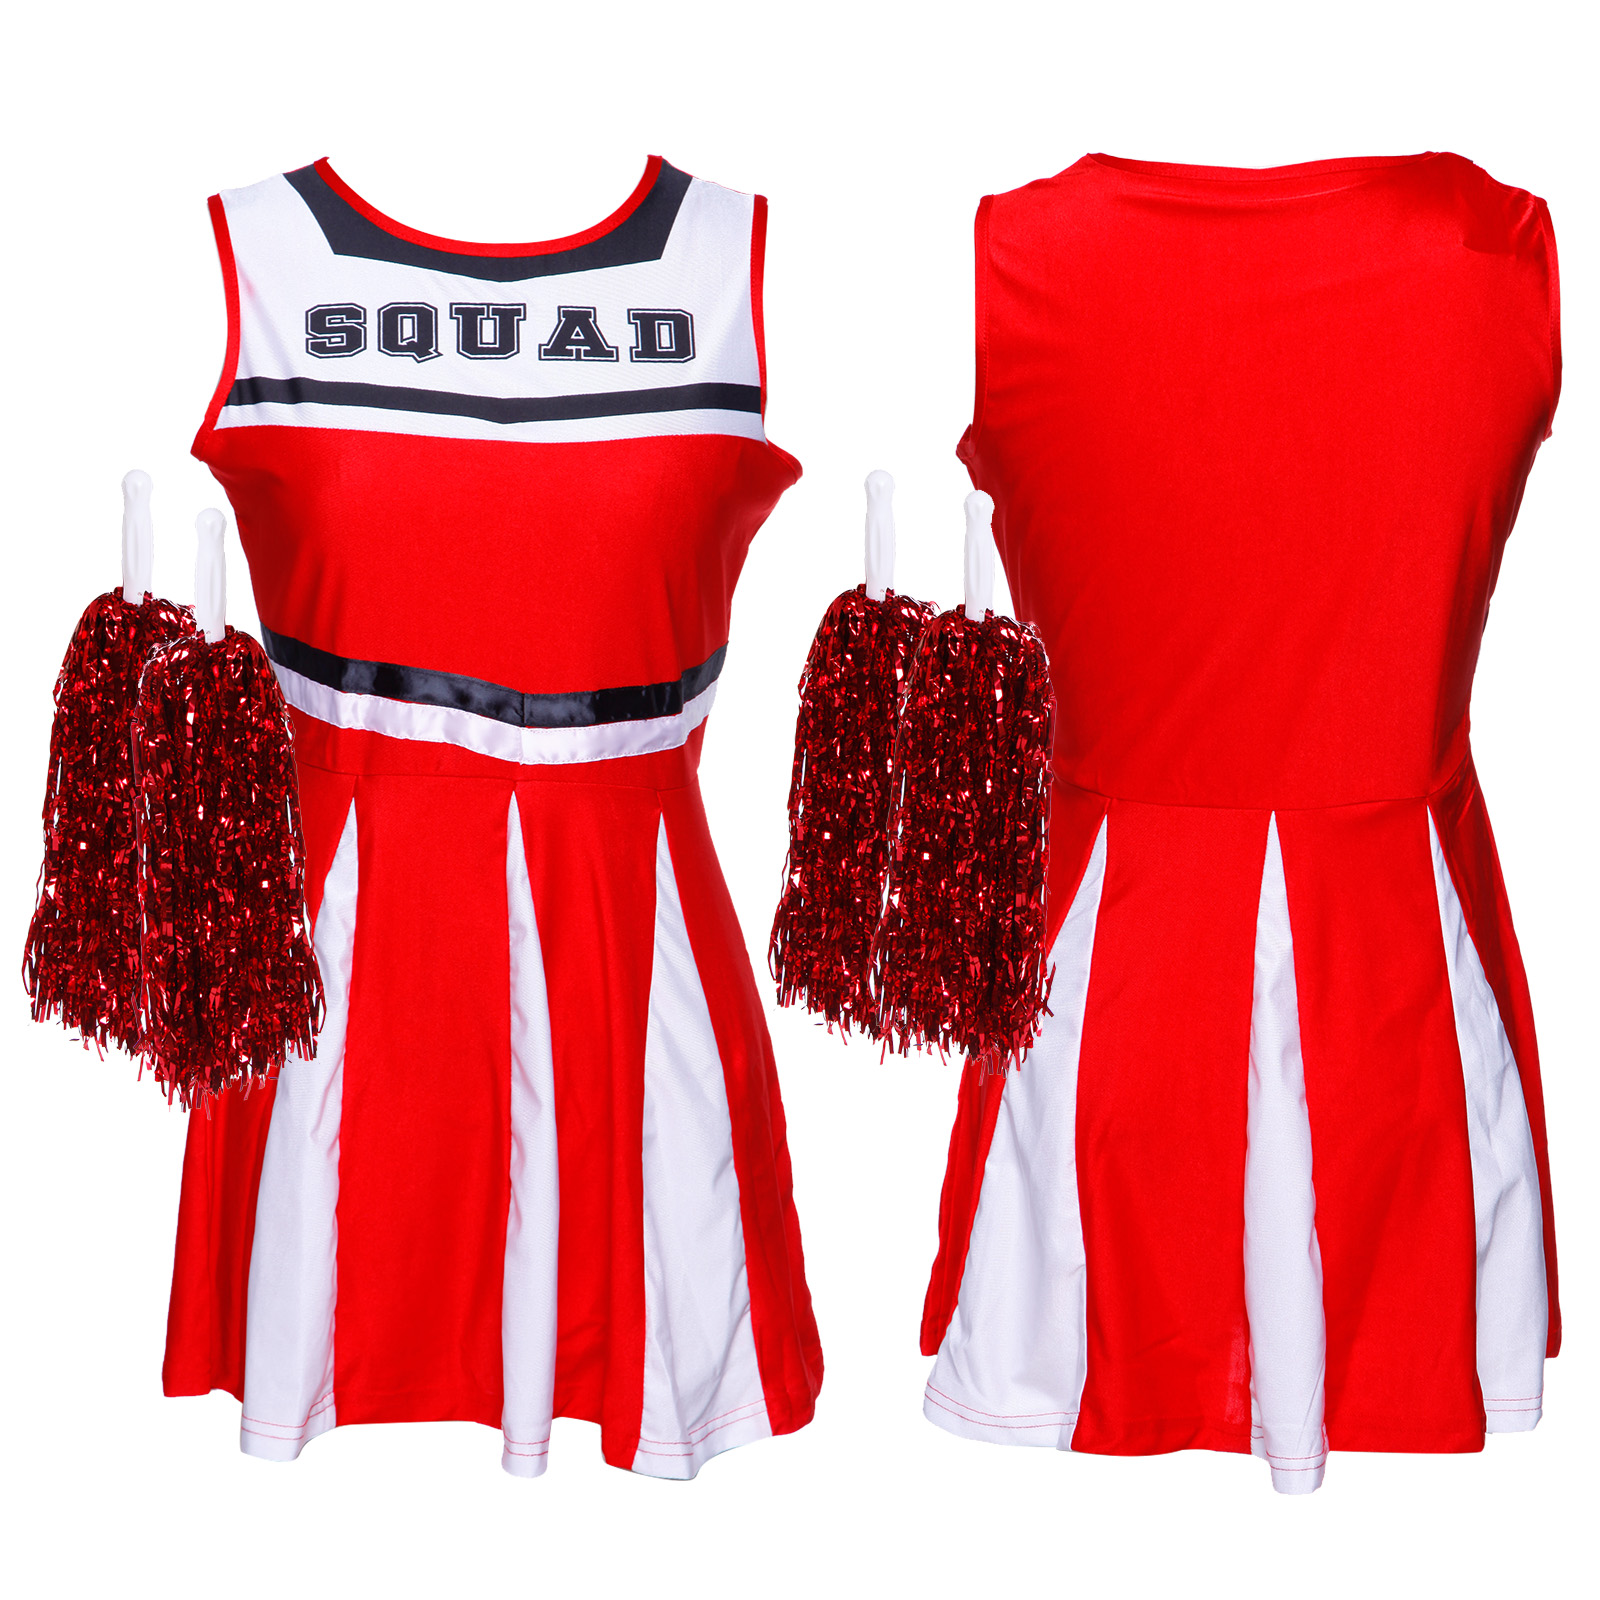 Cheerleader-Fancy-Dress-Outfit-High-School-Musical-Cheer-Uniform-Costume-Pompoms miniature 5